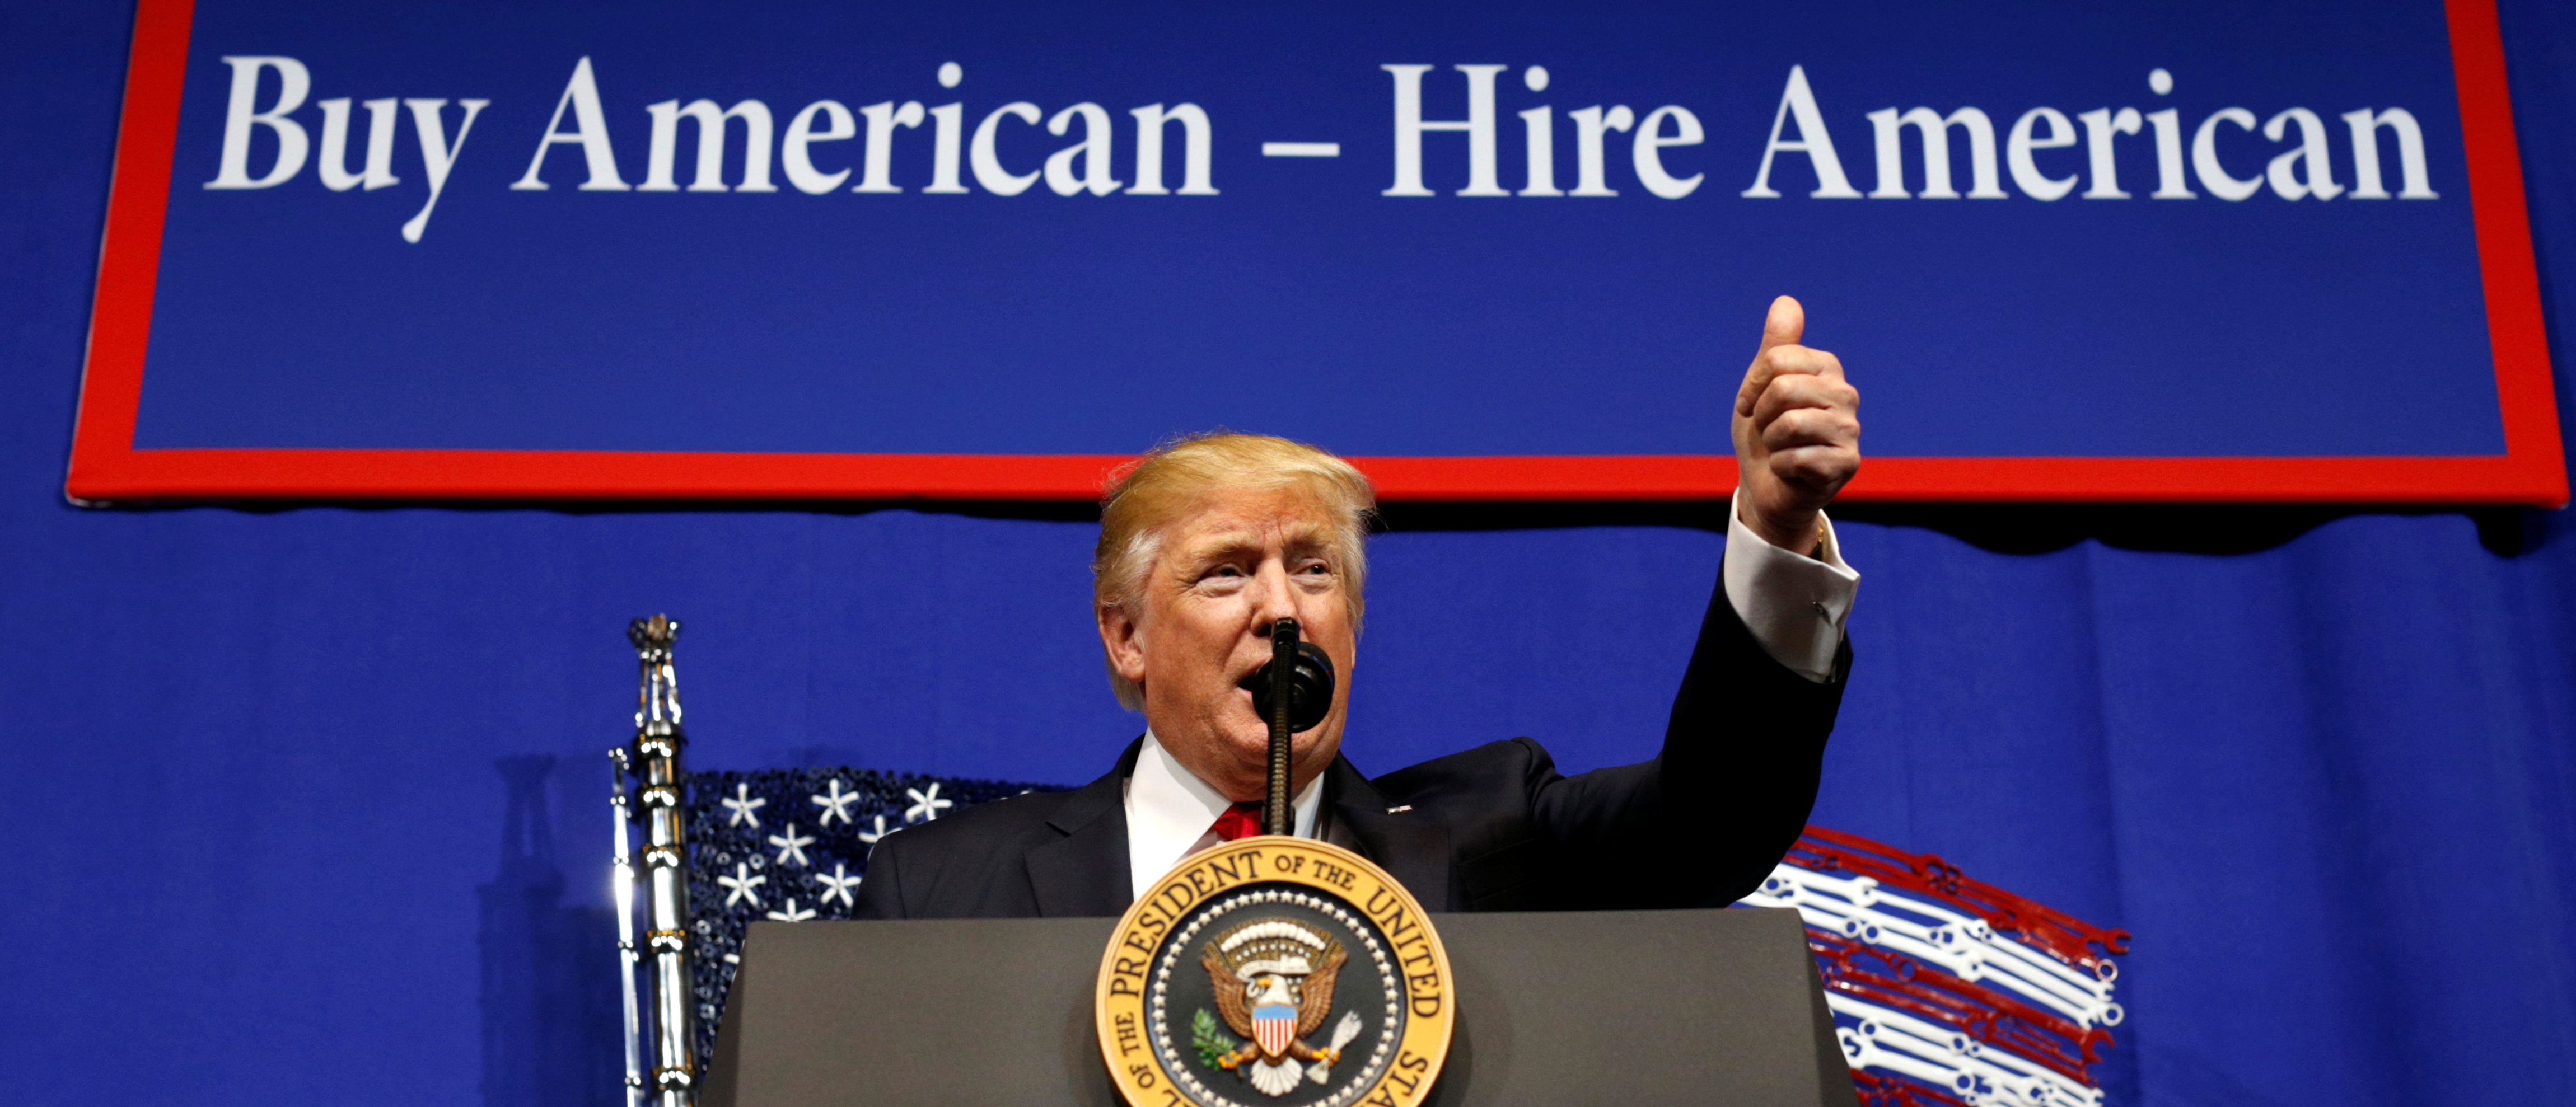 President Donald Trump speaks before signing an executive order directing federal agencies to recommend changes to a temporary visa program used to bring foreign workers to the United States to fill high-skilled jobs during a visit to the world headquarters of Snap-On Inc, a tool manufacturer, in Kenosha, Wisconsin, April 18, 2017. REUTERS/Kevin Lamarque